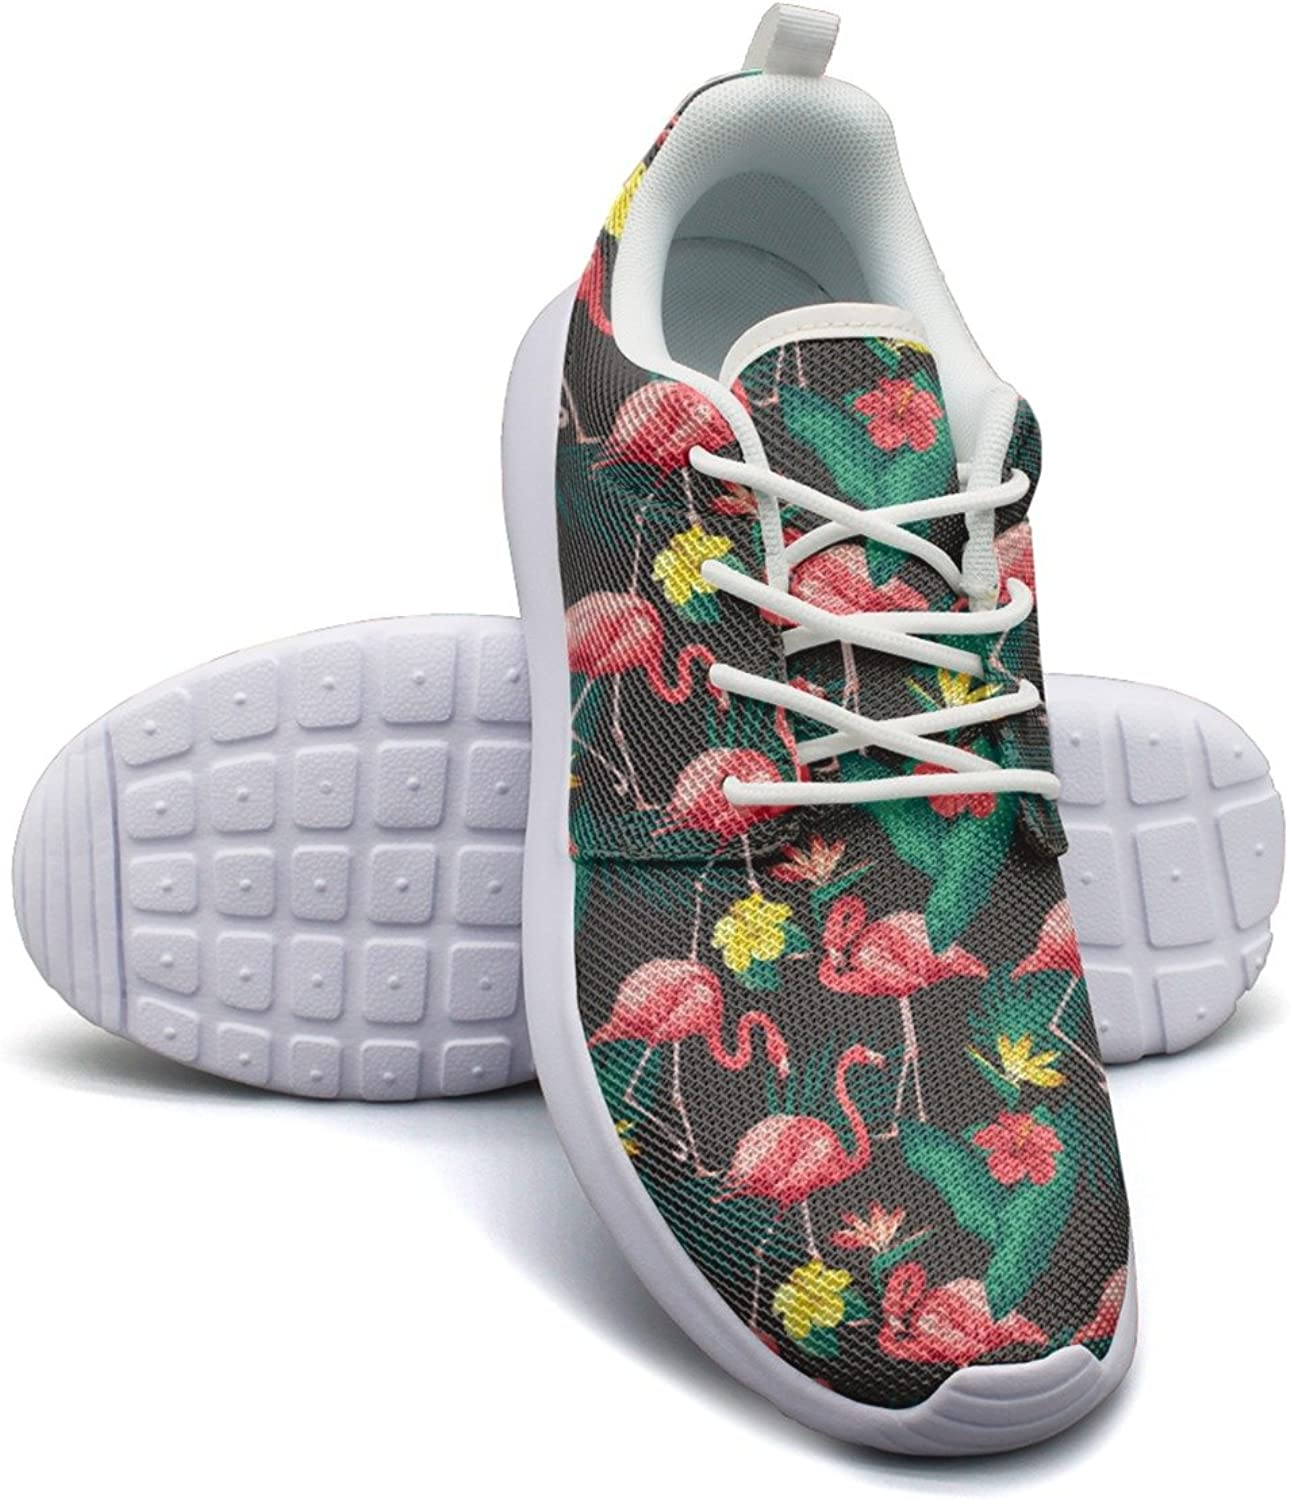 Gjsonmv Flamingo and Tropical Plants mesh Lightweight shoes for Women Dad Sports Track Sneakers shoes